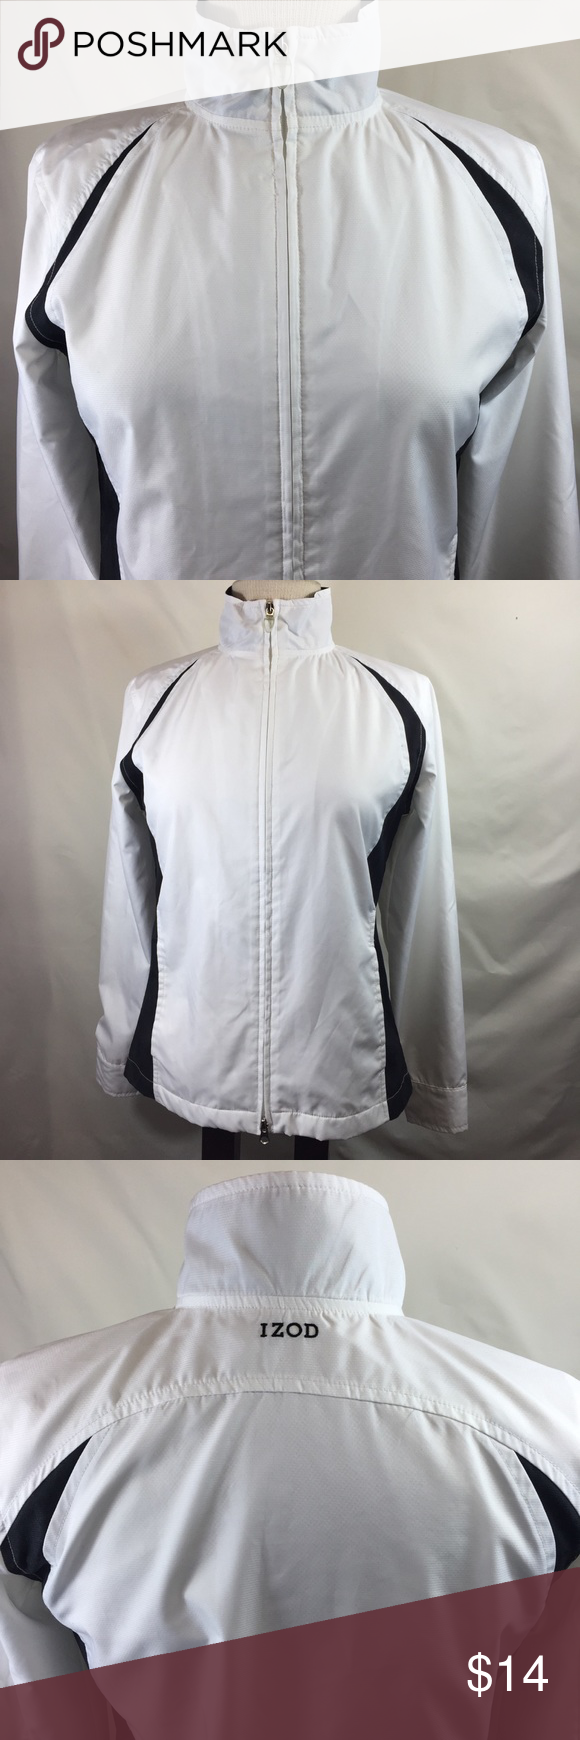 Izod Track Jacket Windbreaker Size Xs A Really Nice Jacket From Izod Windbreaker Mesh Lined In Great Condition With Track Jackets Windbreaker Clothes Design [ 1740 x 580 Pixel ]